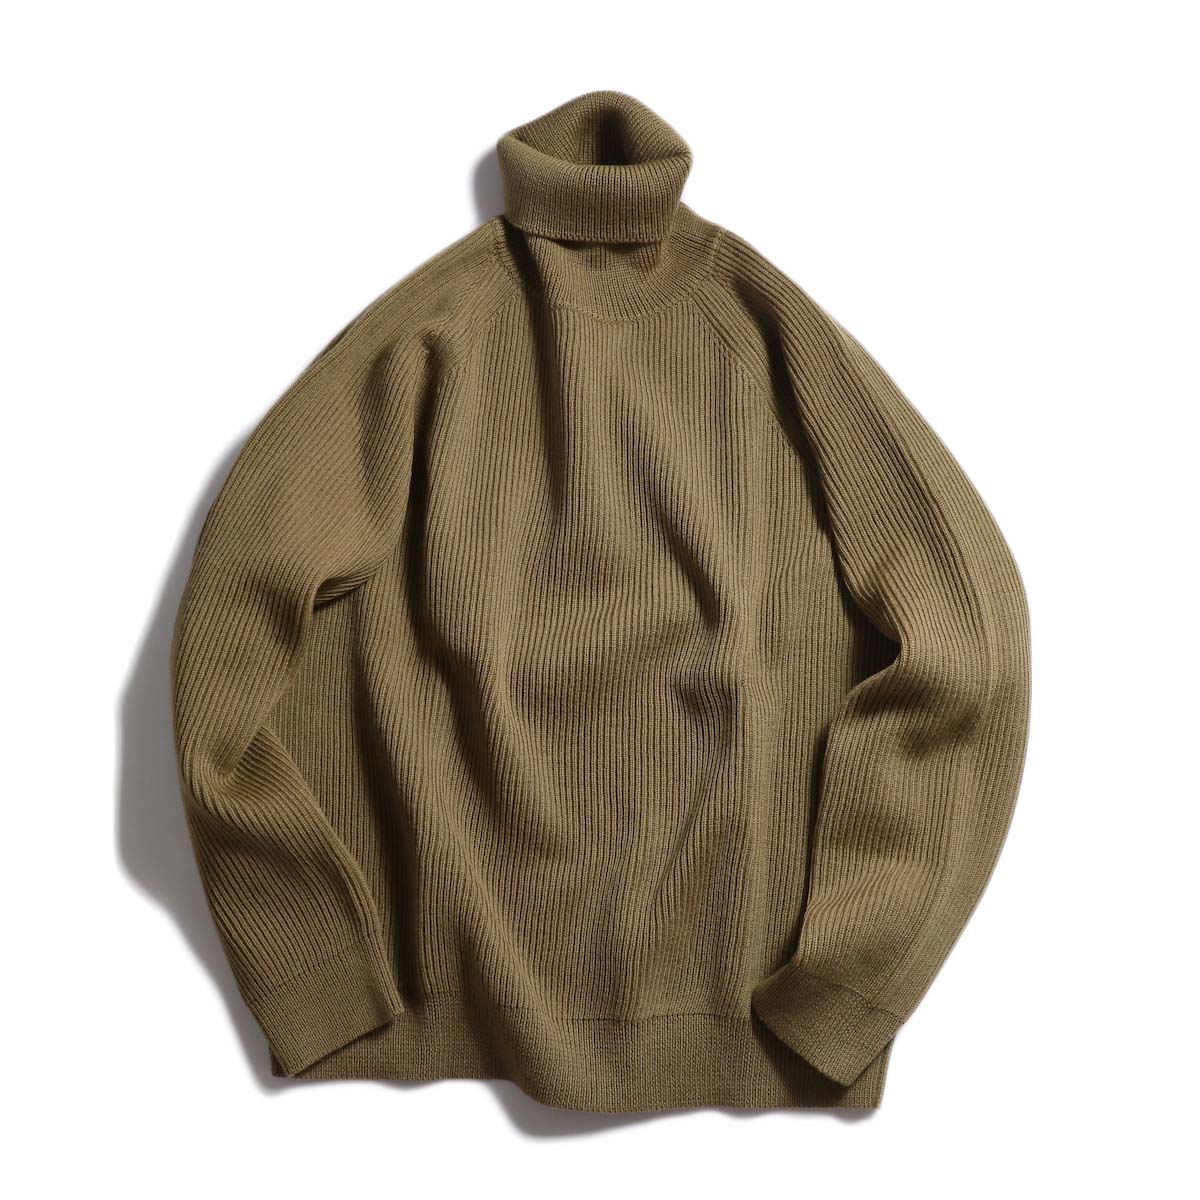 Living Concept / LOW GAUZE TURTLENECK KNIT -BEIGE